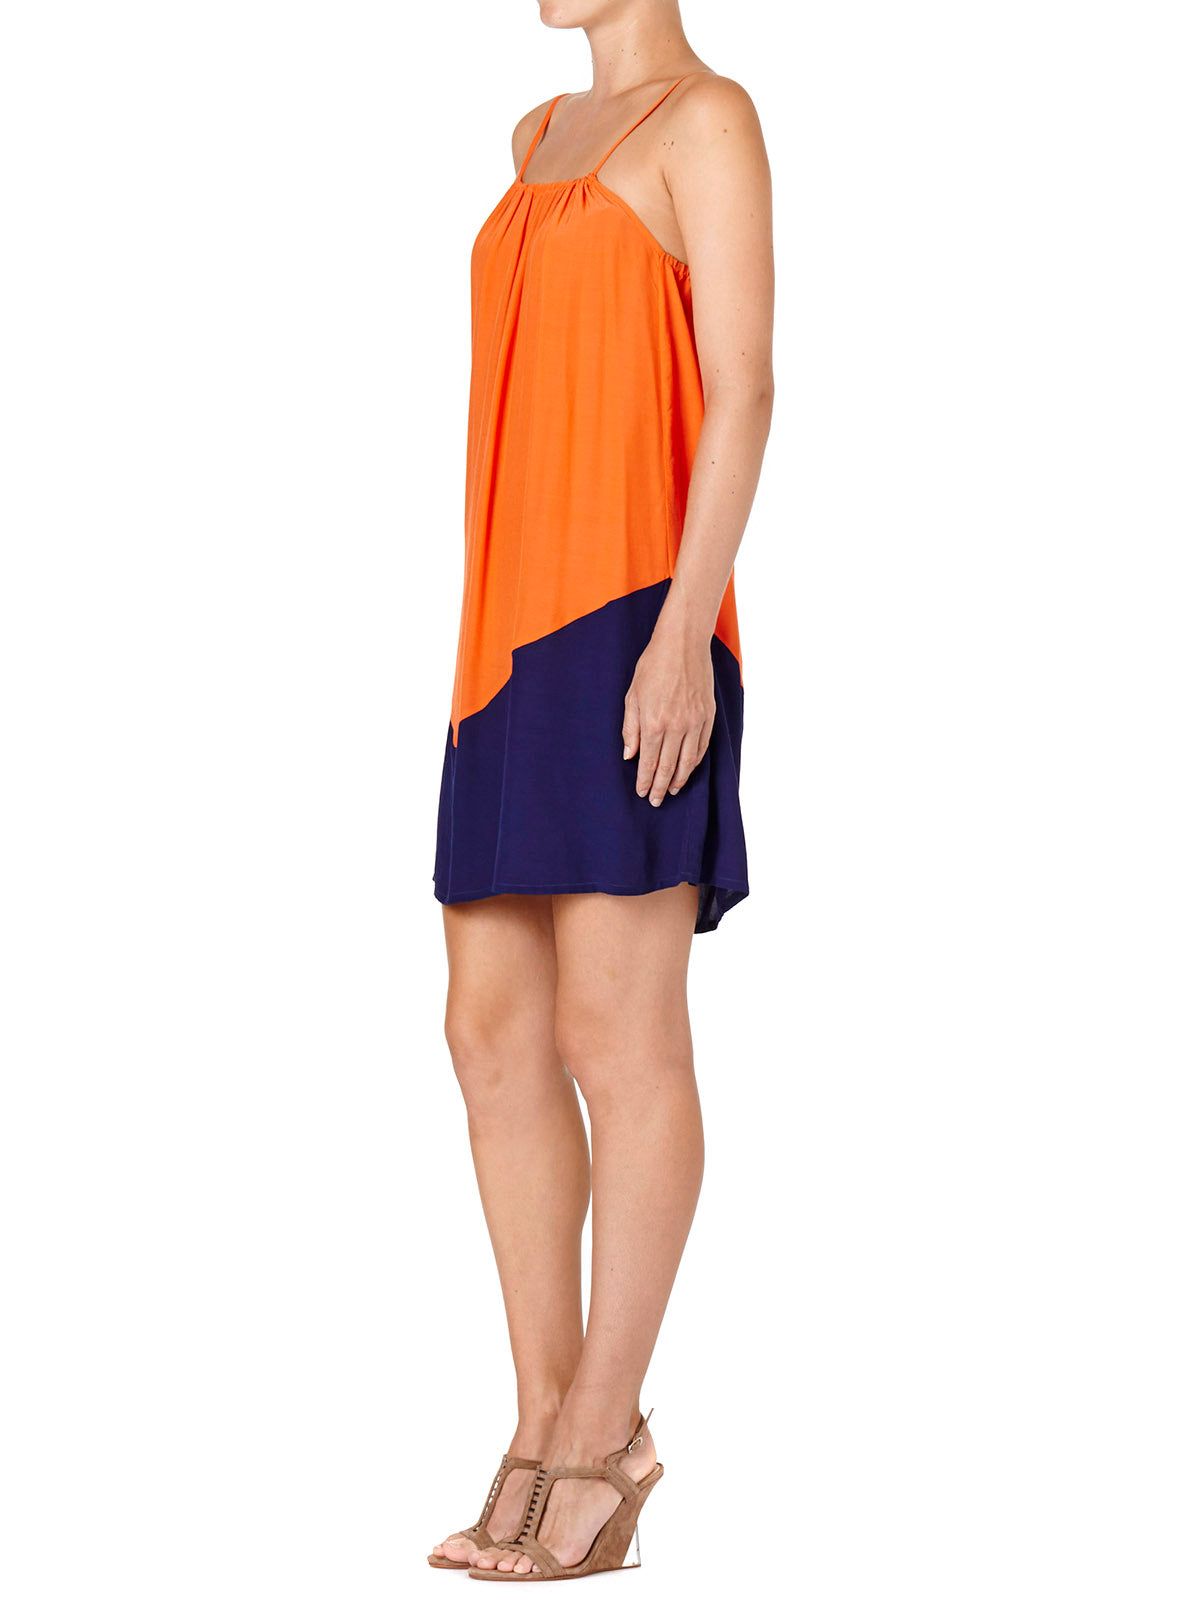 COLOUR BLOCK DRESS BLUE ORANGE